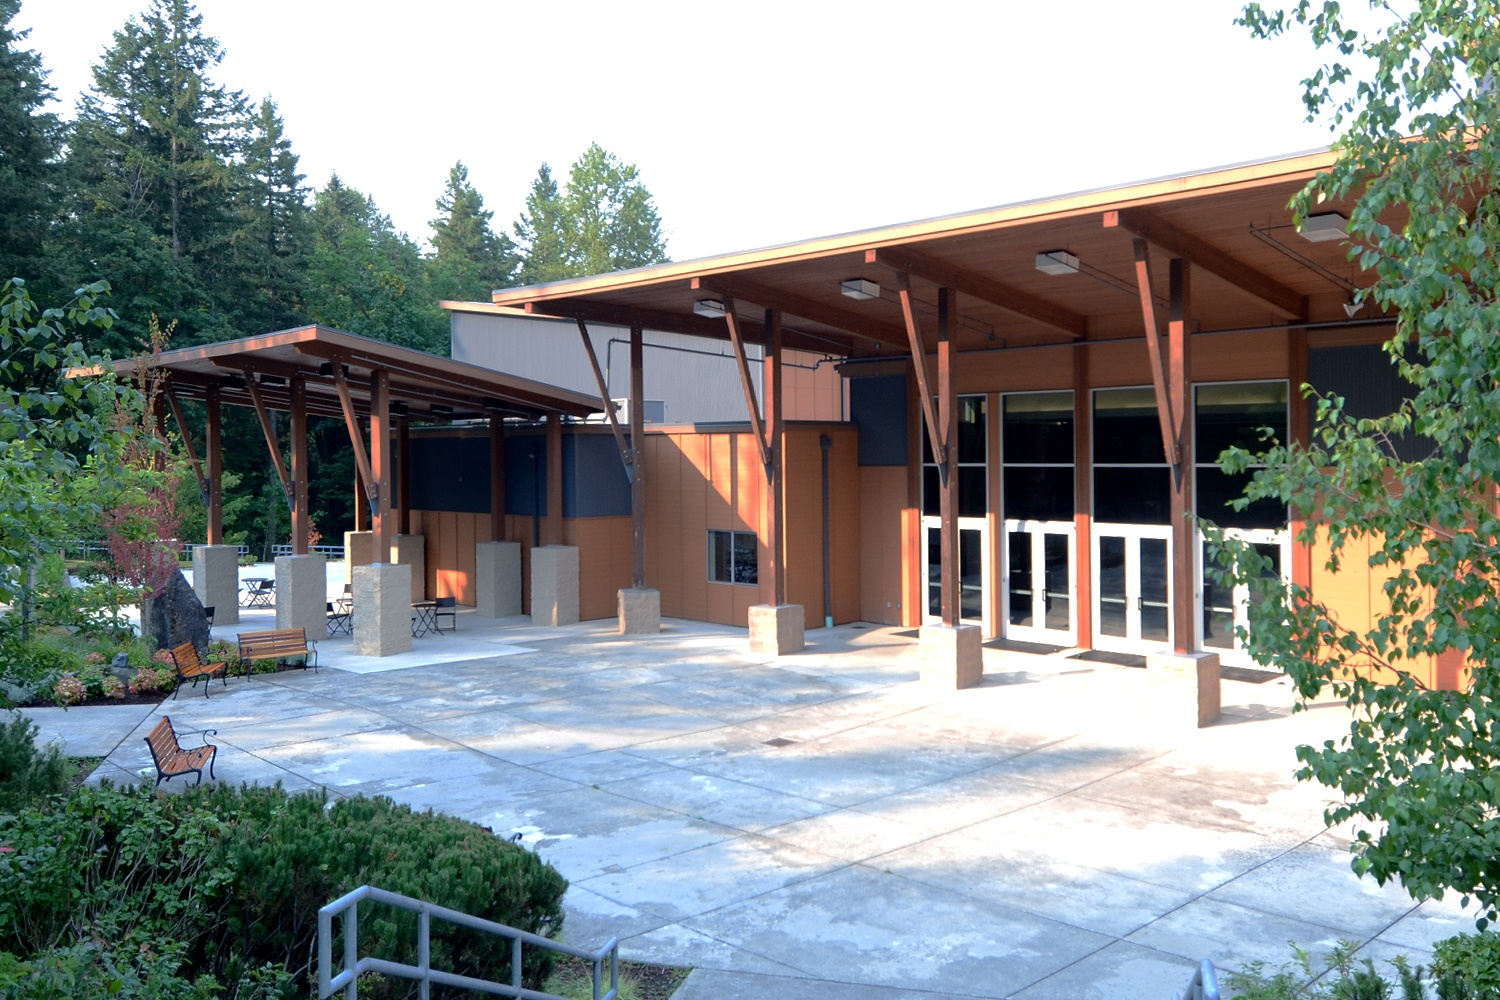 Timberlake Church Redmond/Sammamish Campus